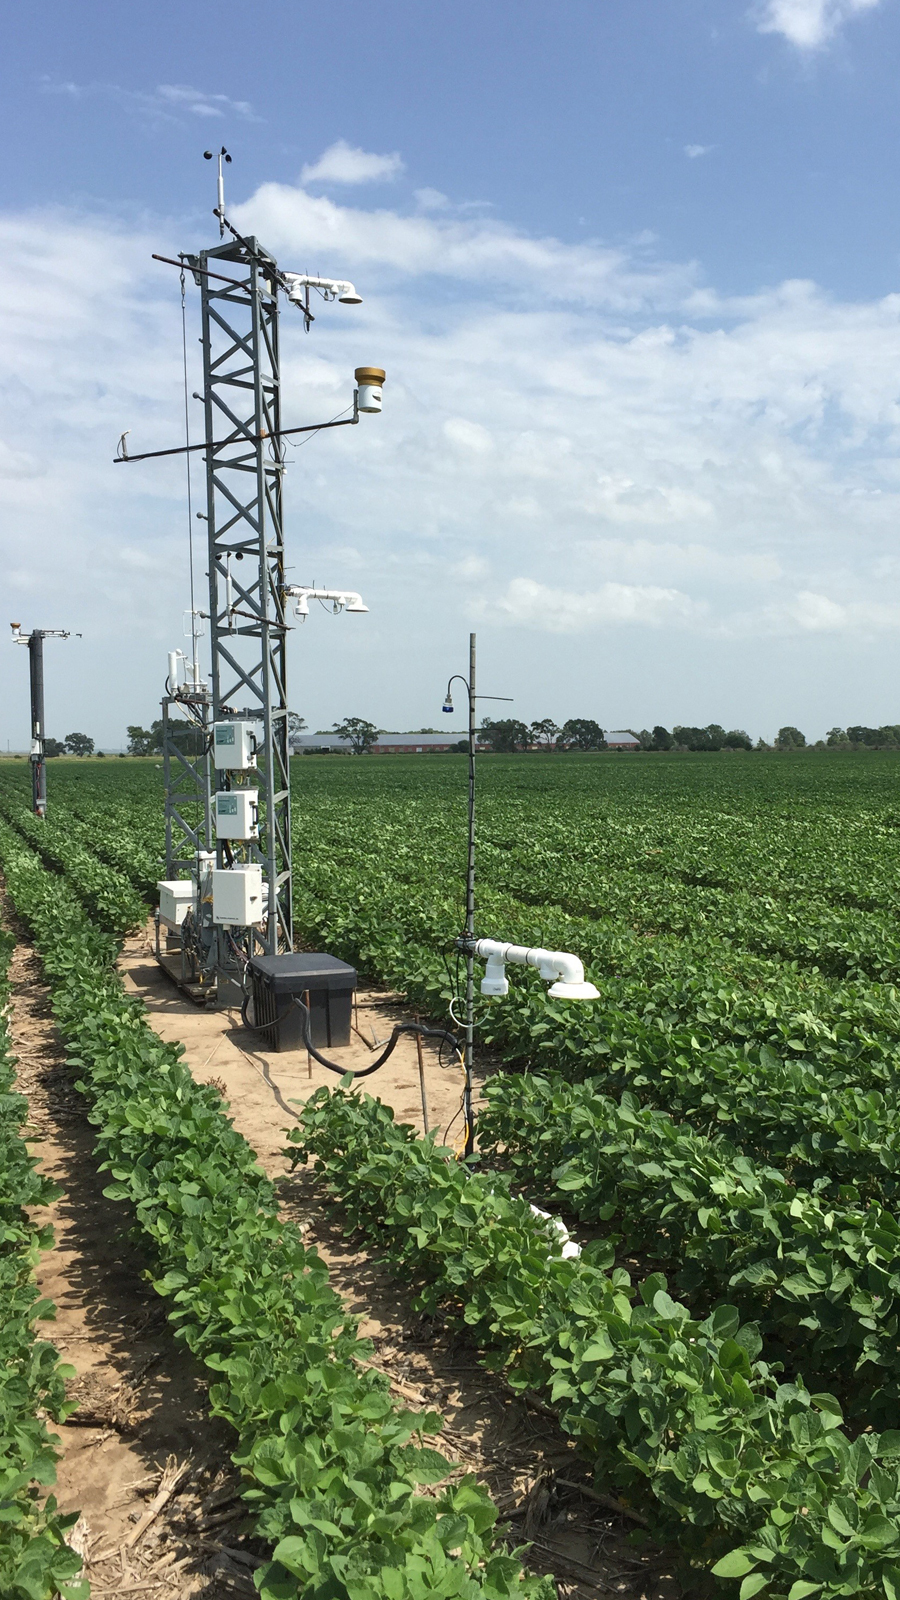 Tower eddy covariance and supporting environmental sensors